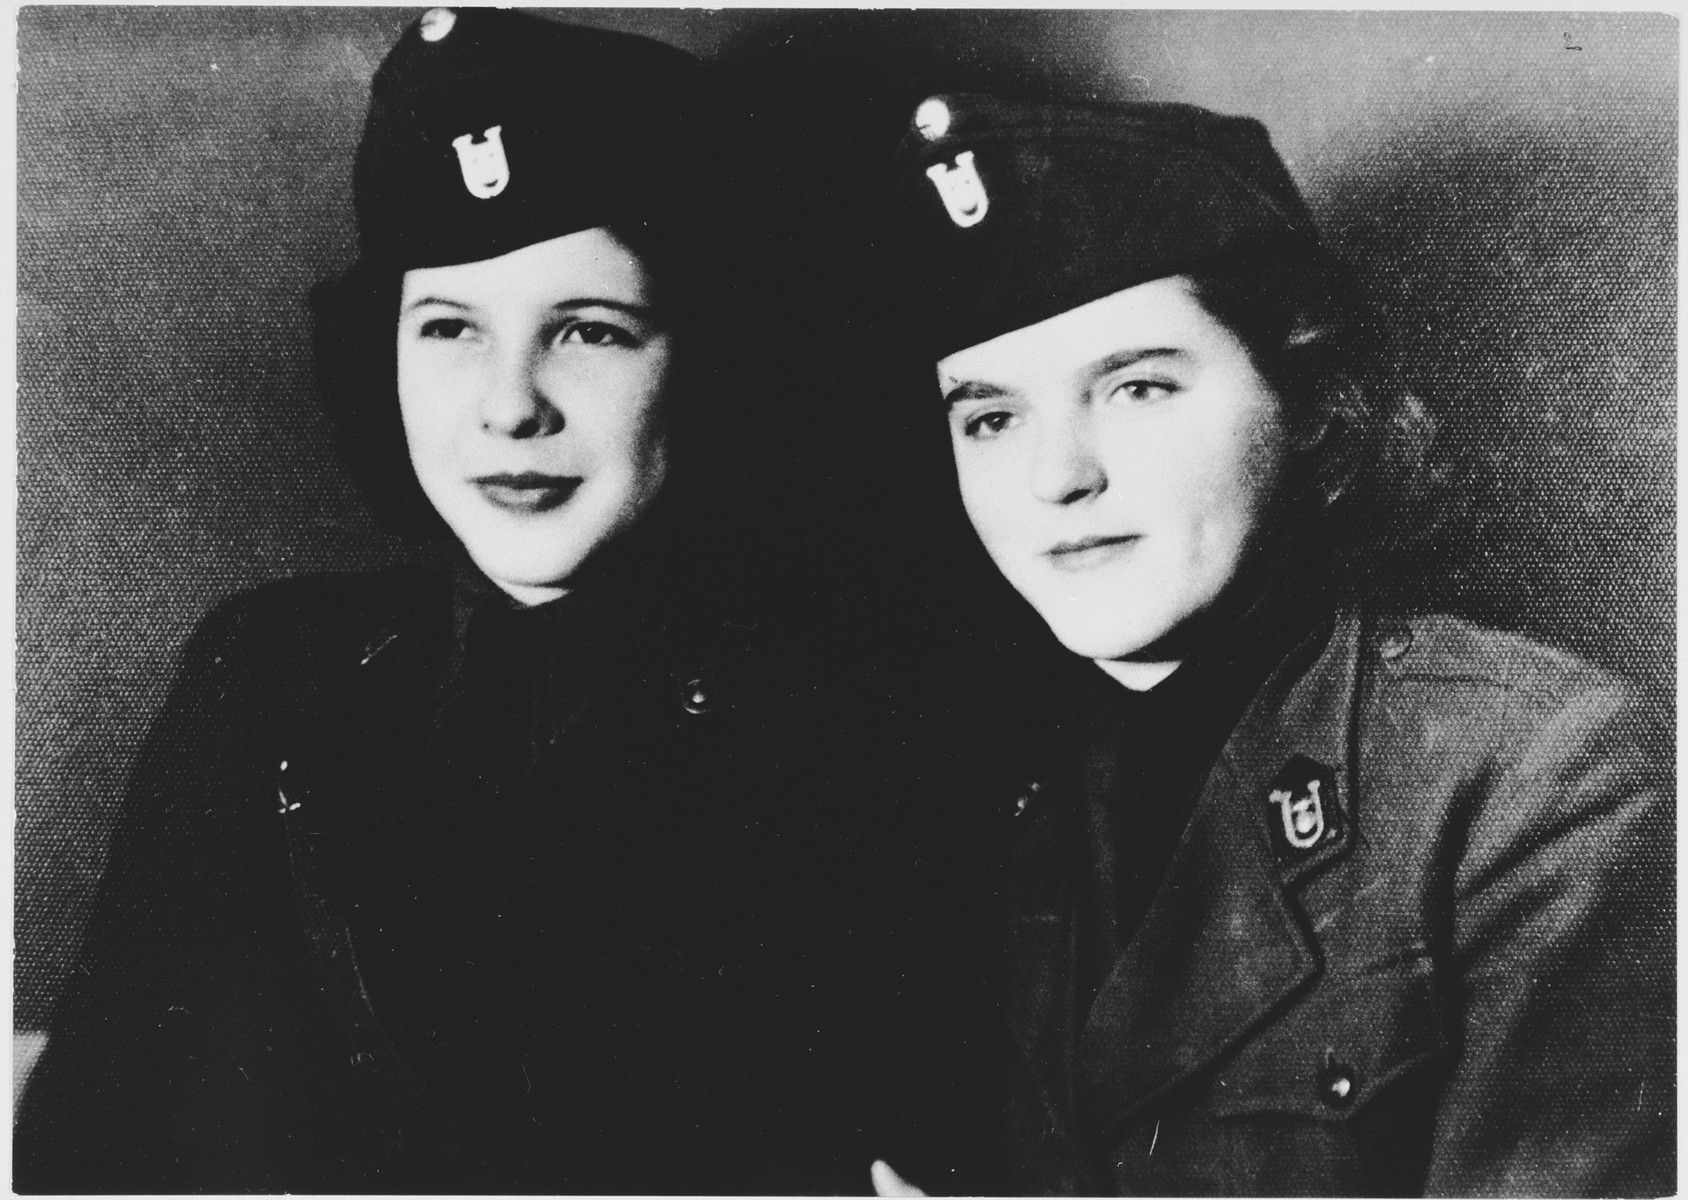 Portrait of two young women in Ustasa uniform.  Pictured on the left is Nada Tanic-Luburic and on the right is Maja Slomic-Buzdon.